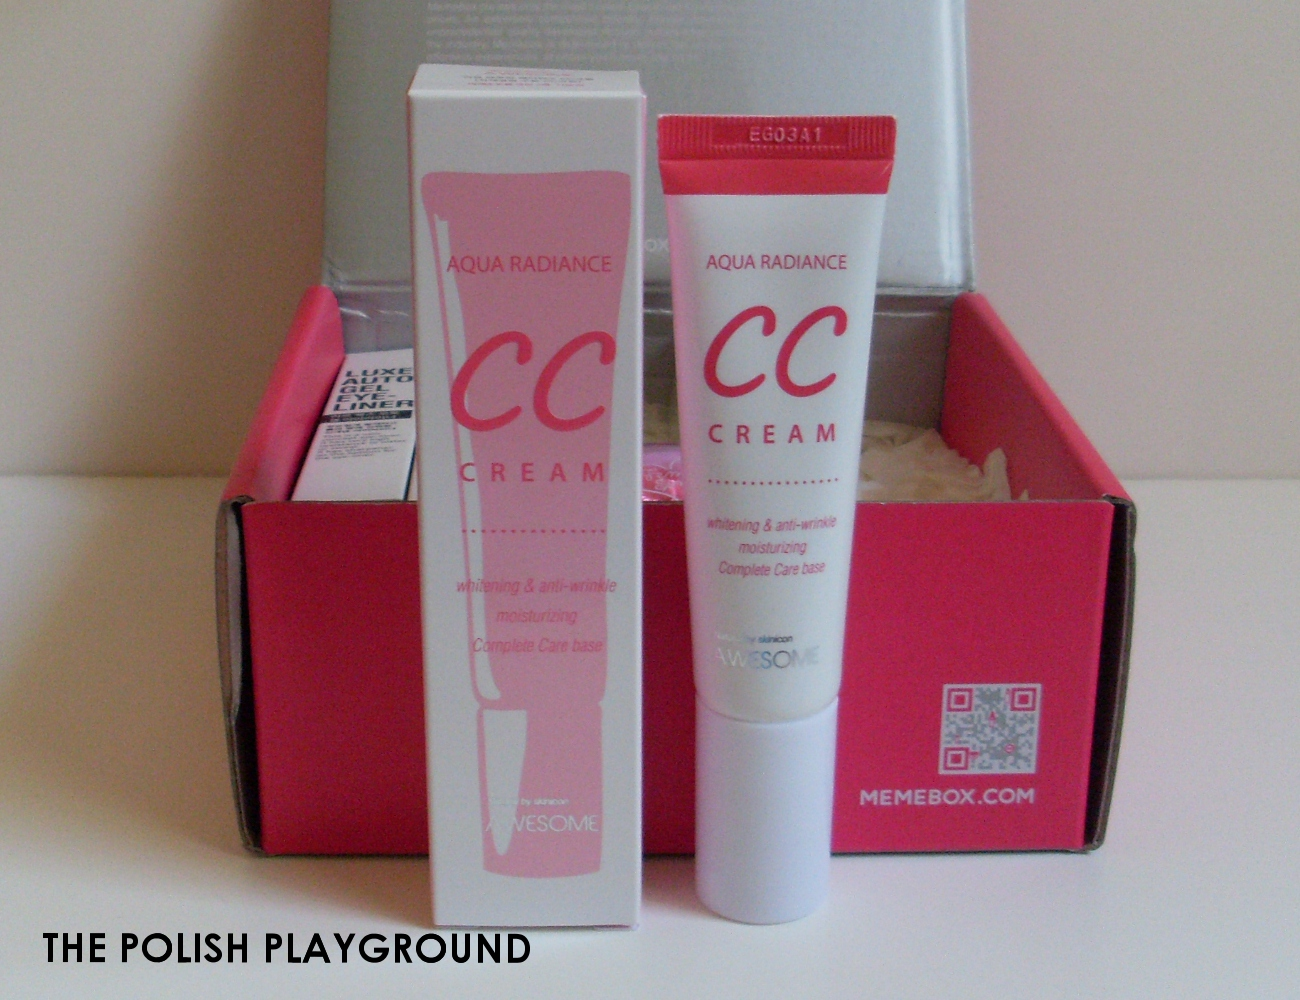 Memebox Special #17 K-Style Cosmetics Unboxing - awesome Aqua Radiance CC Cream